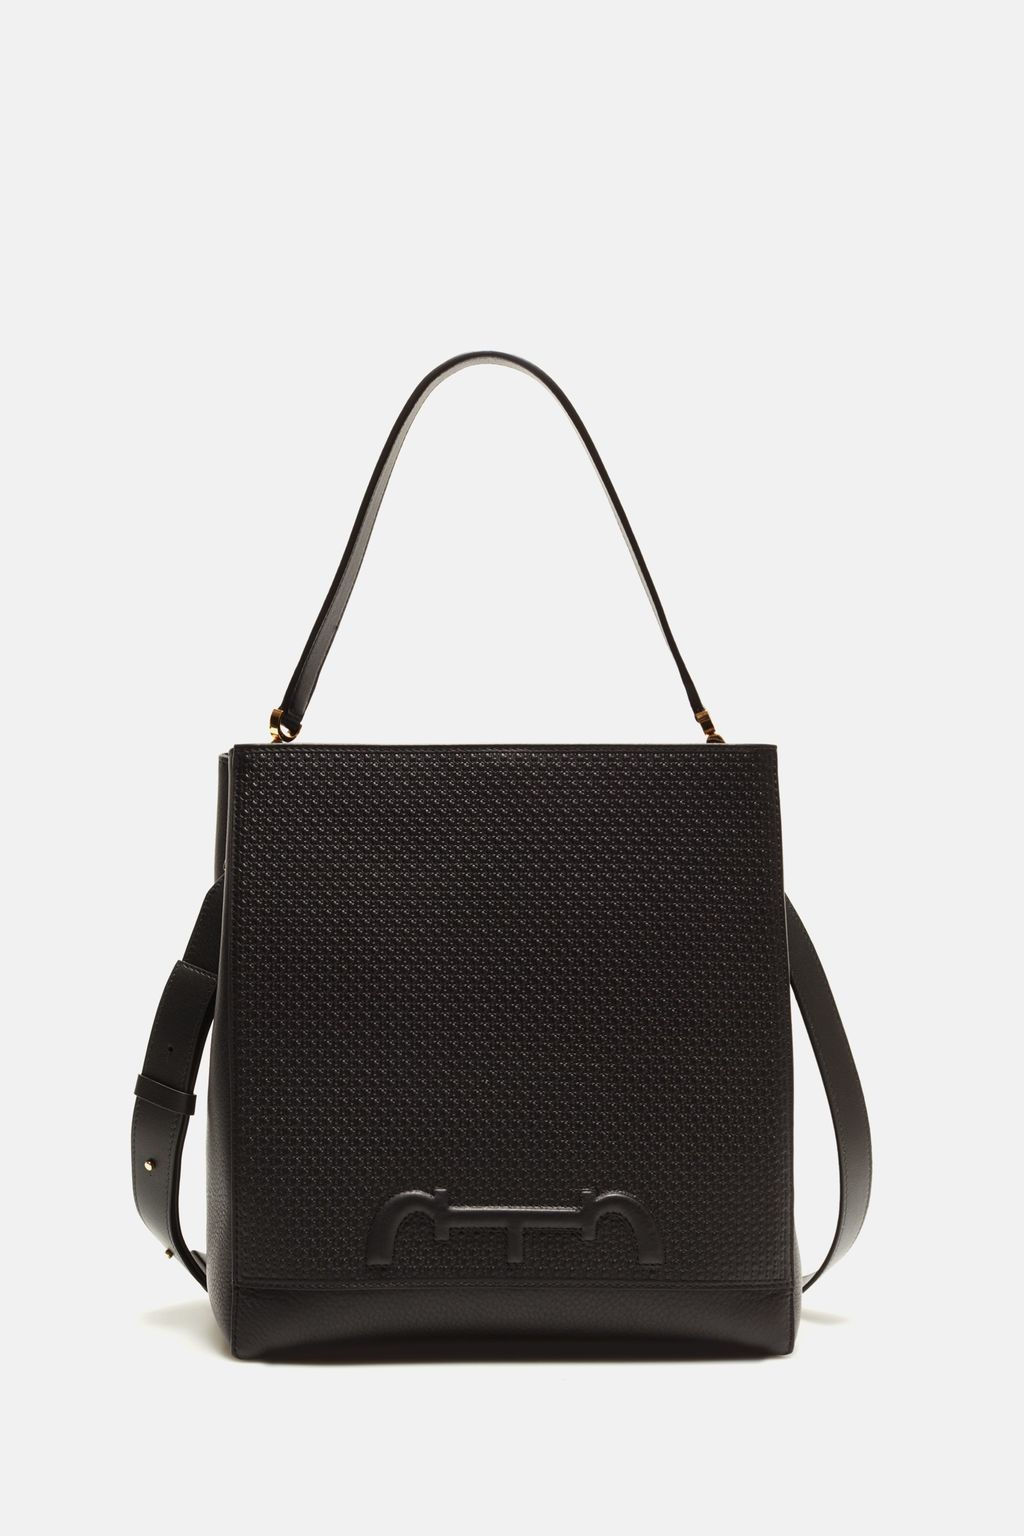 Doma Insignia Hobo | Medium shoulder bag